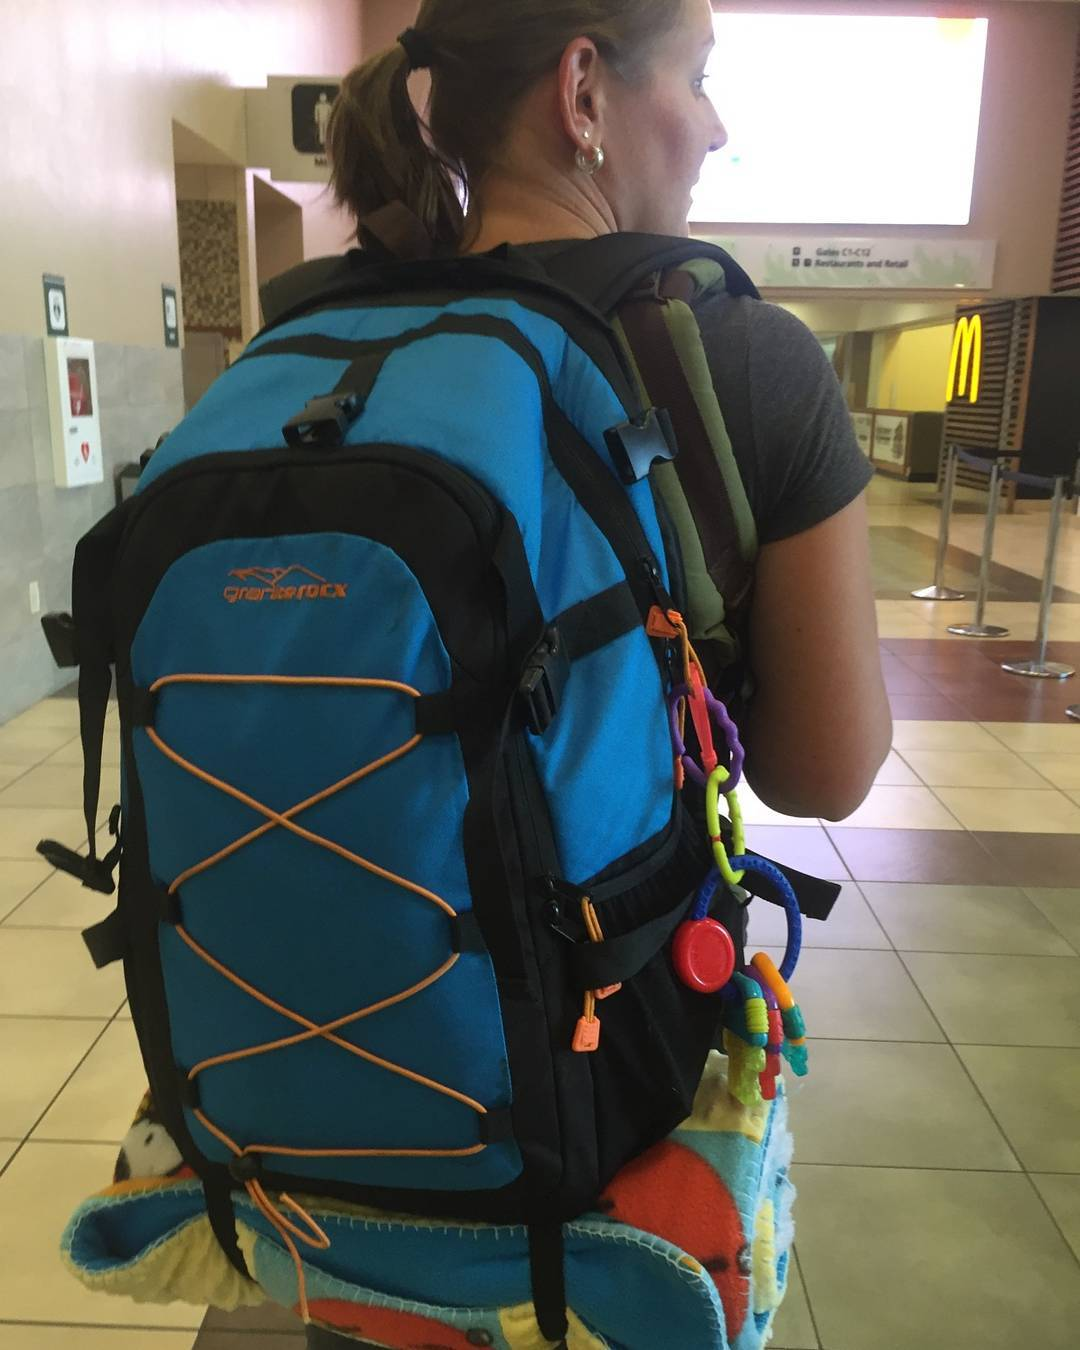 Travel with babies and children is made so much easier with the Cascade backpack & cooler! Thanks for the shot Patty! #travel #backpacks #coolers #adventure